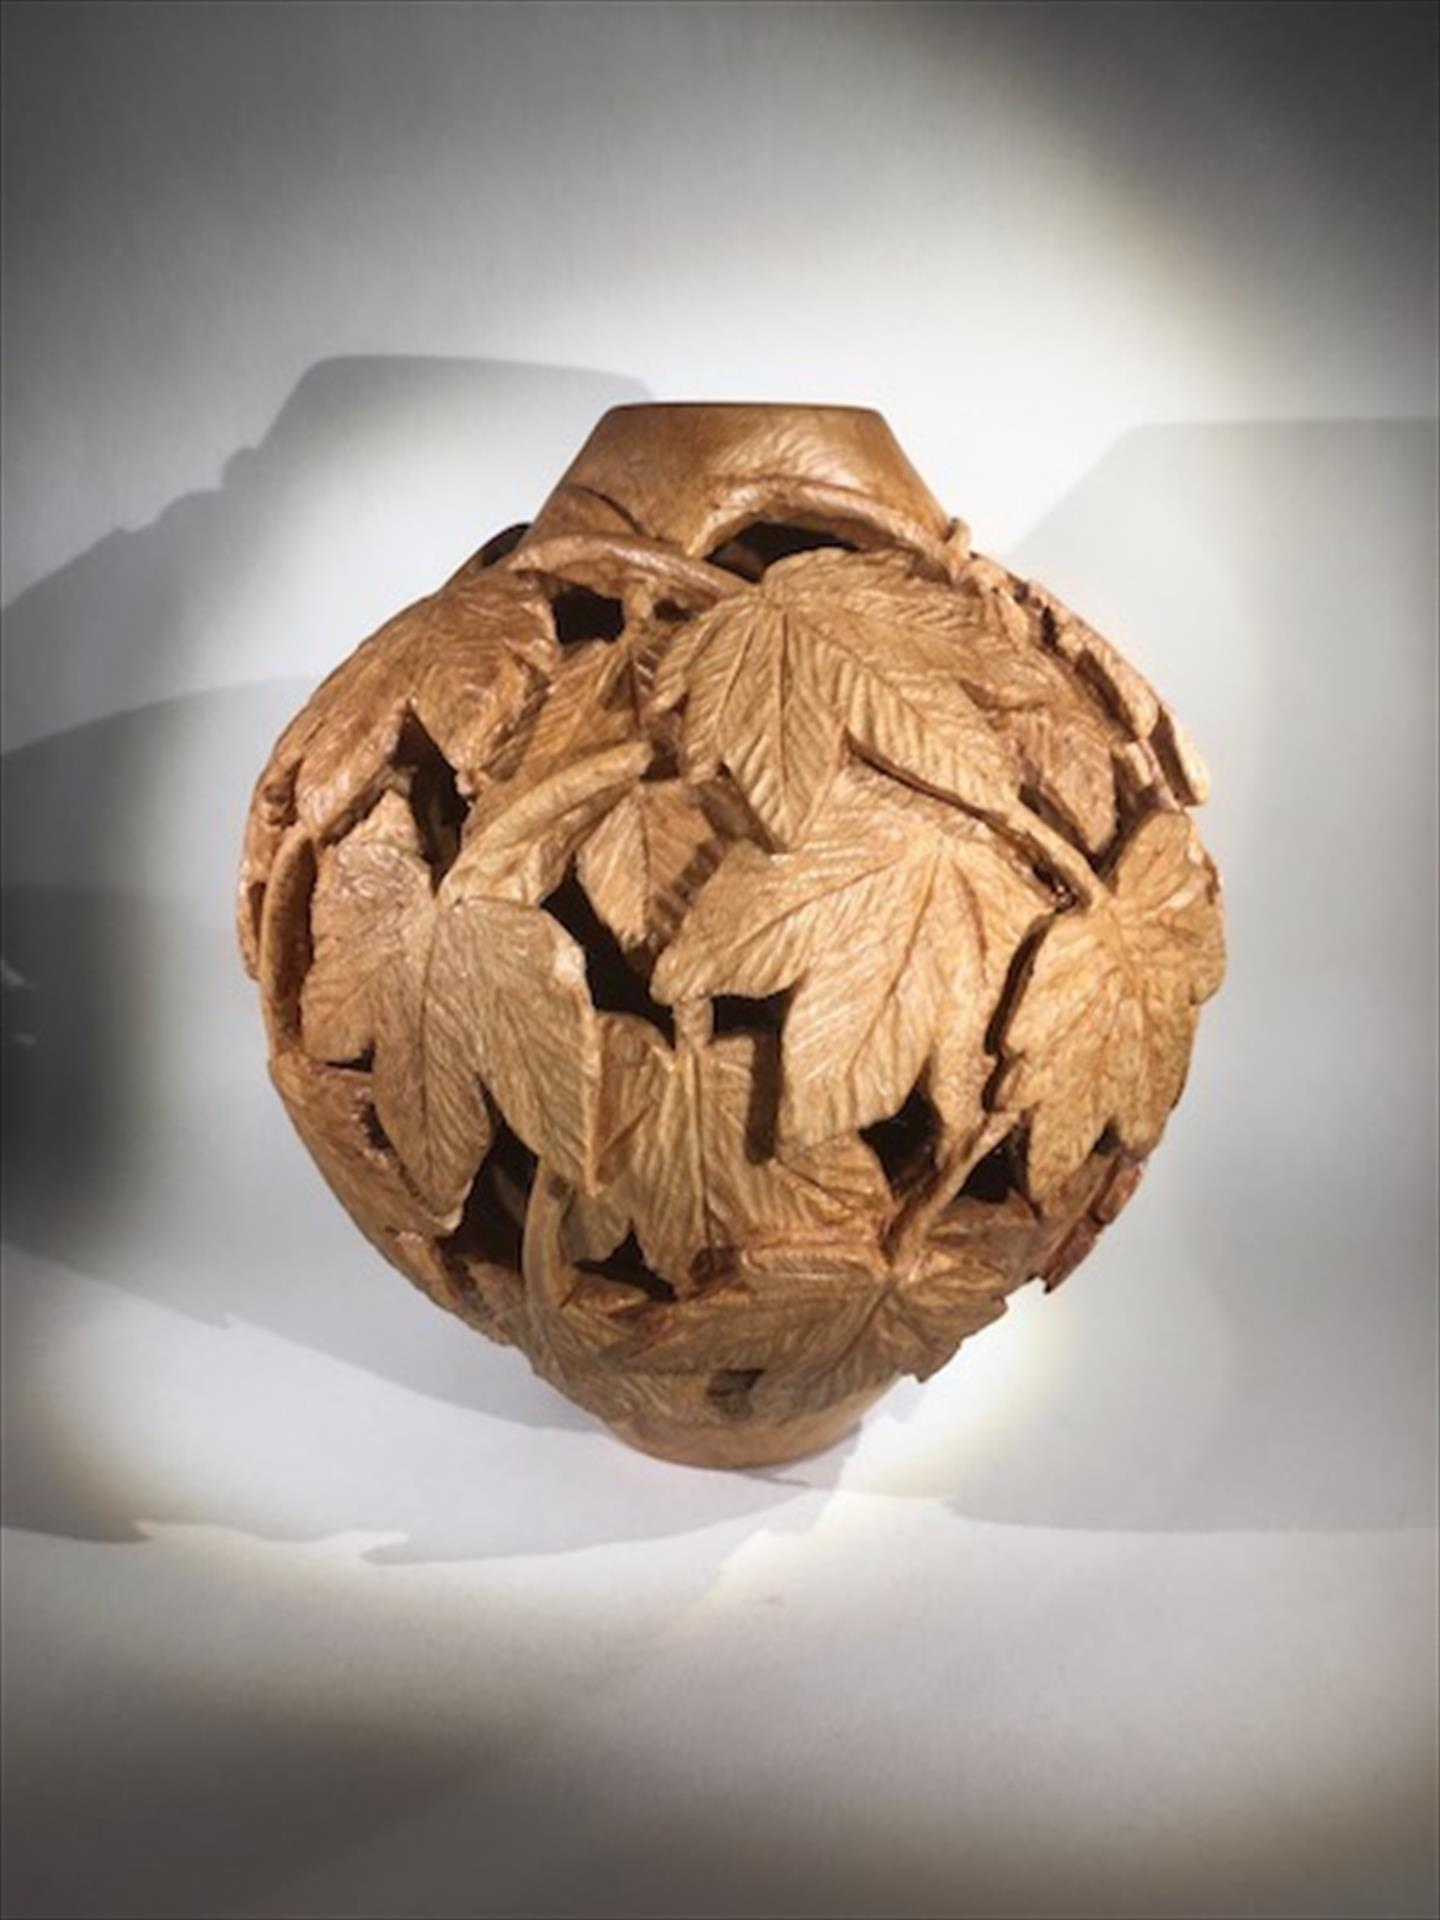 carved wood hollow form with decorative leaves